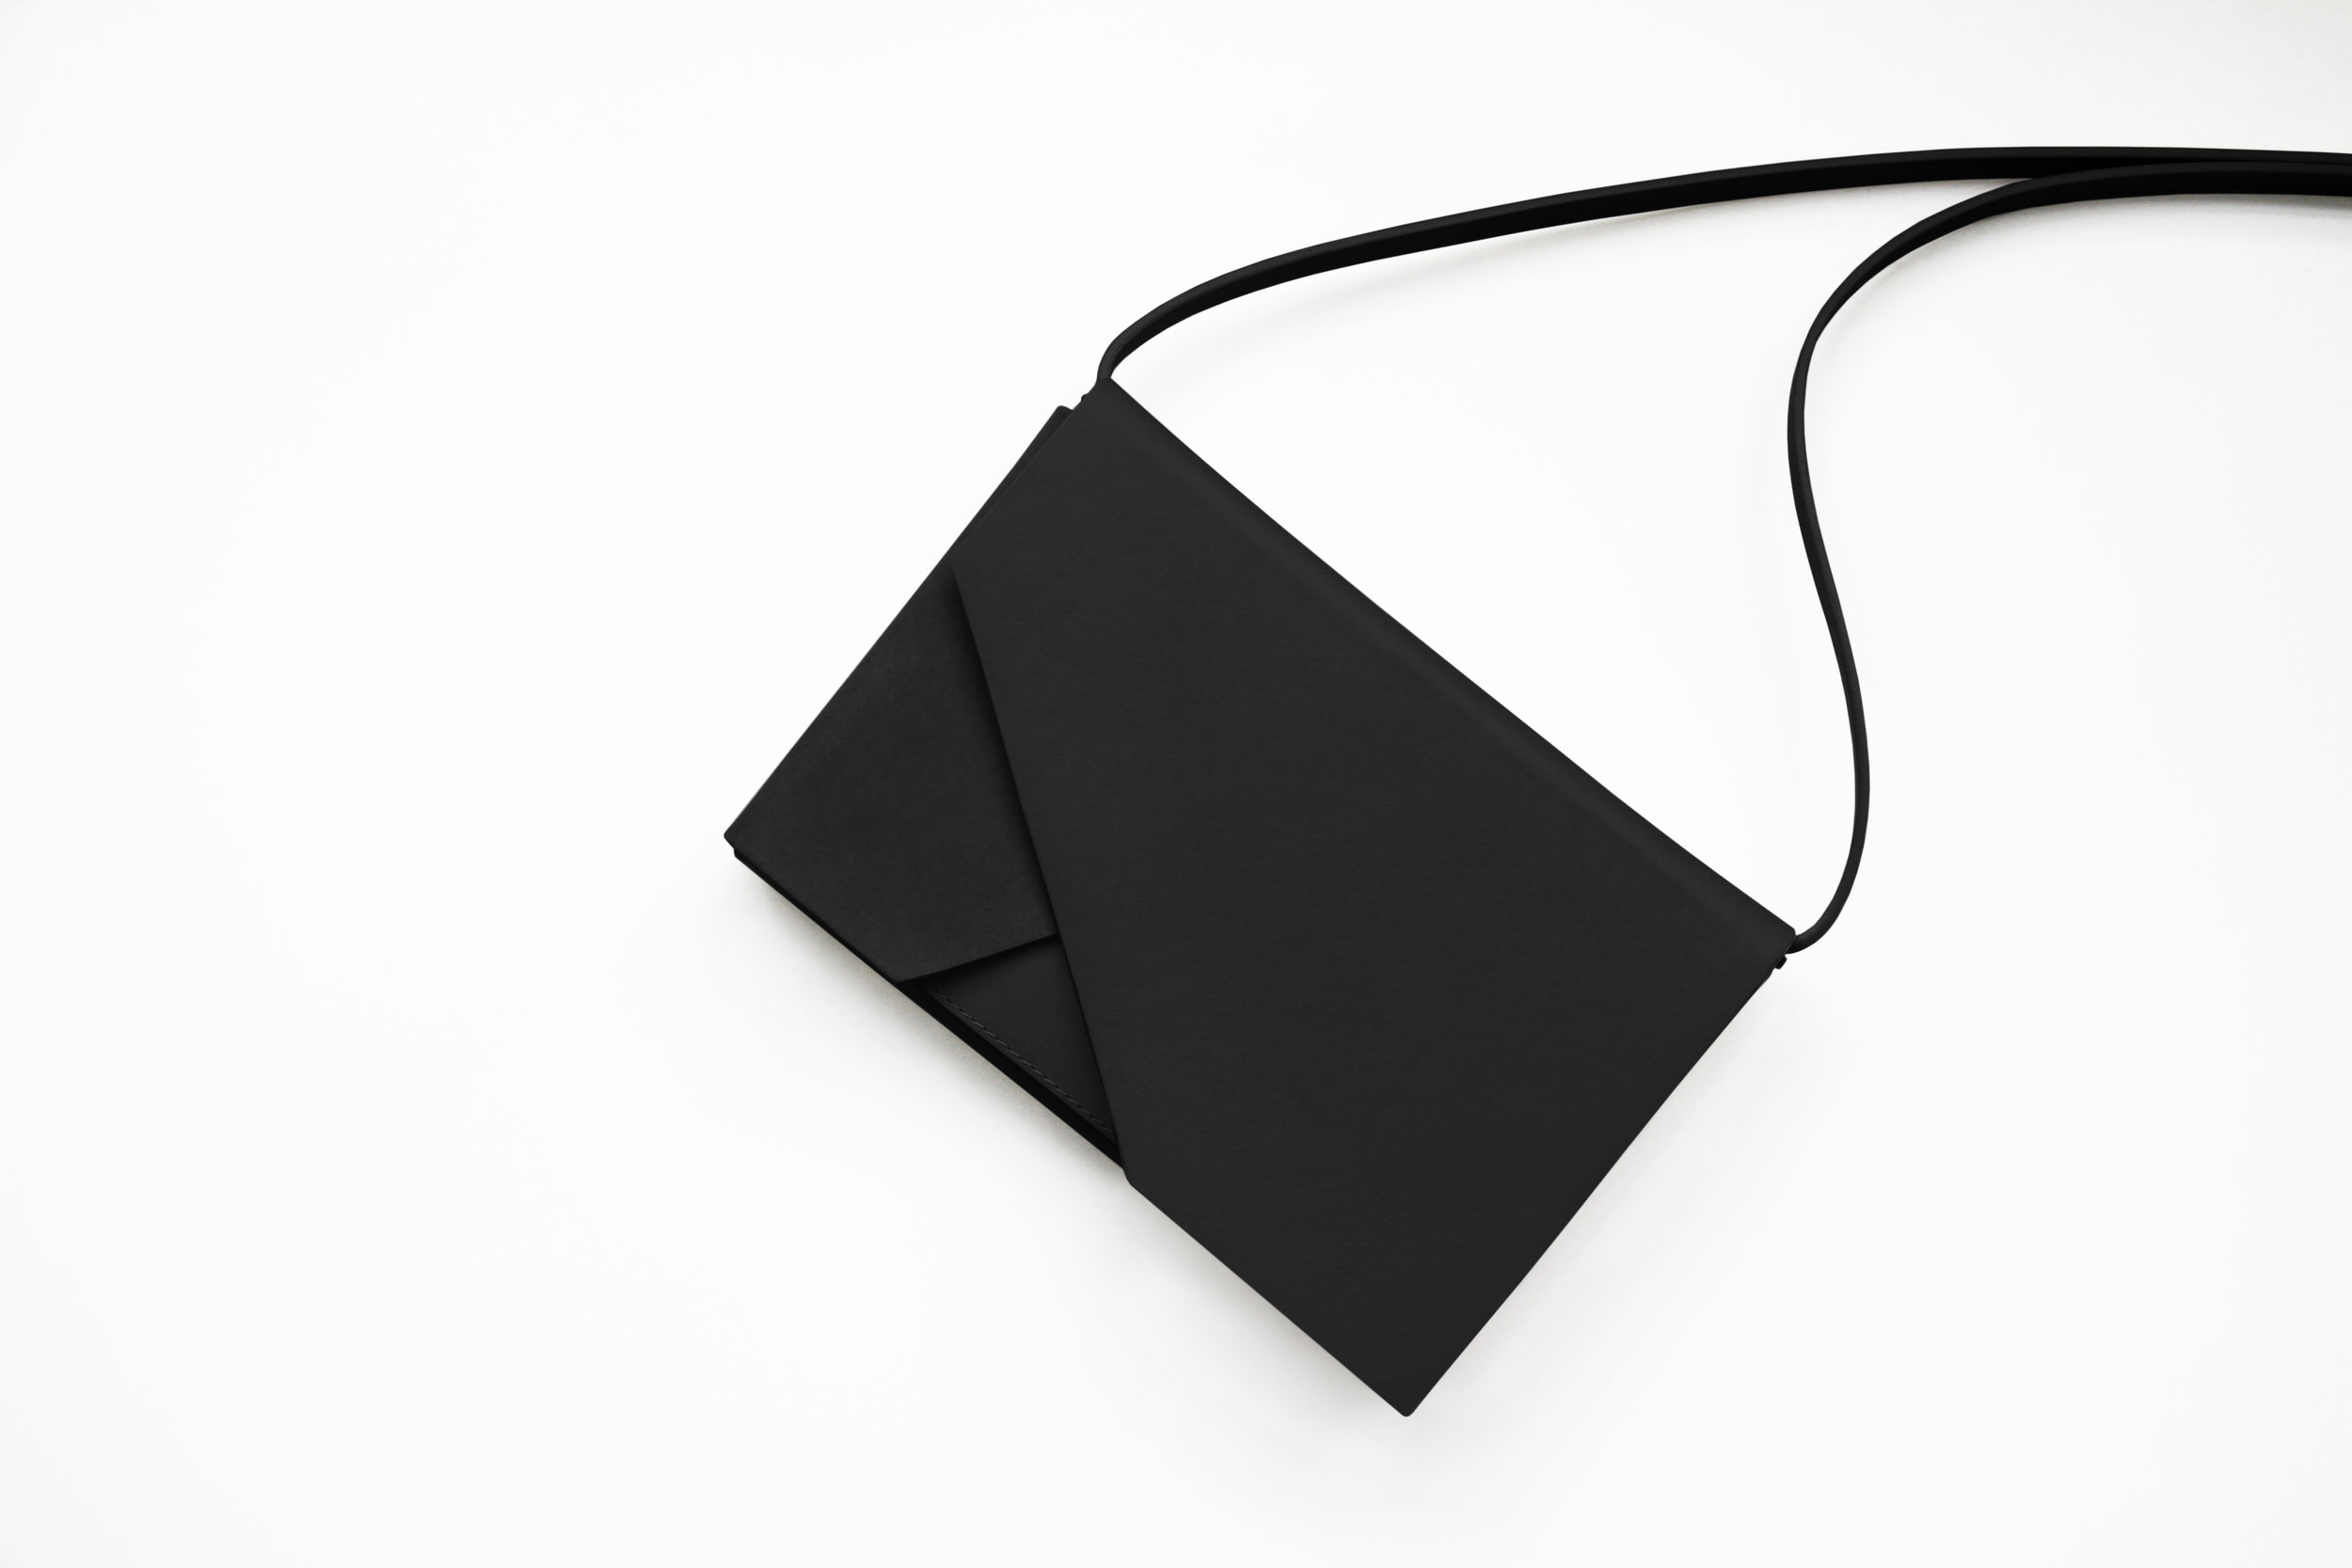 Evo Leather Clutch Black Front 2 -Urban Travel x Isabel Wong V2.jpg